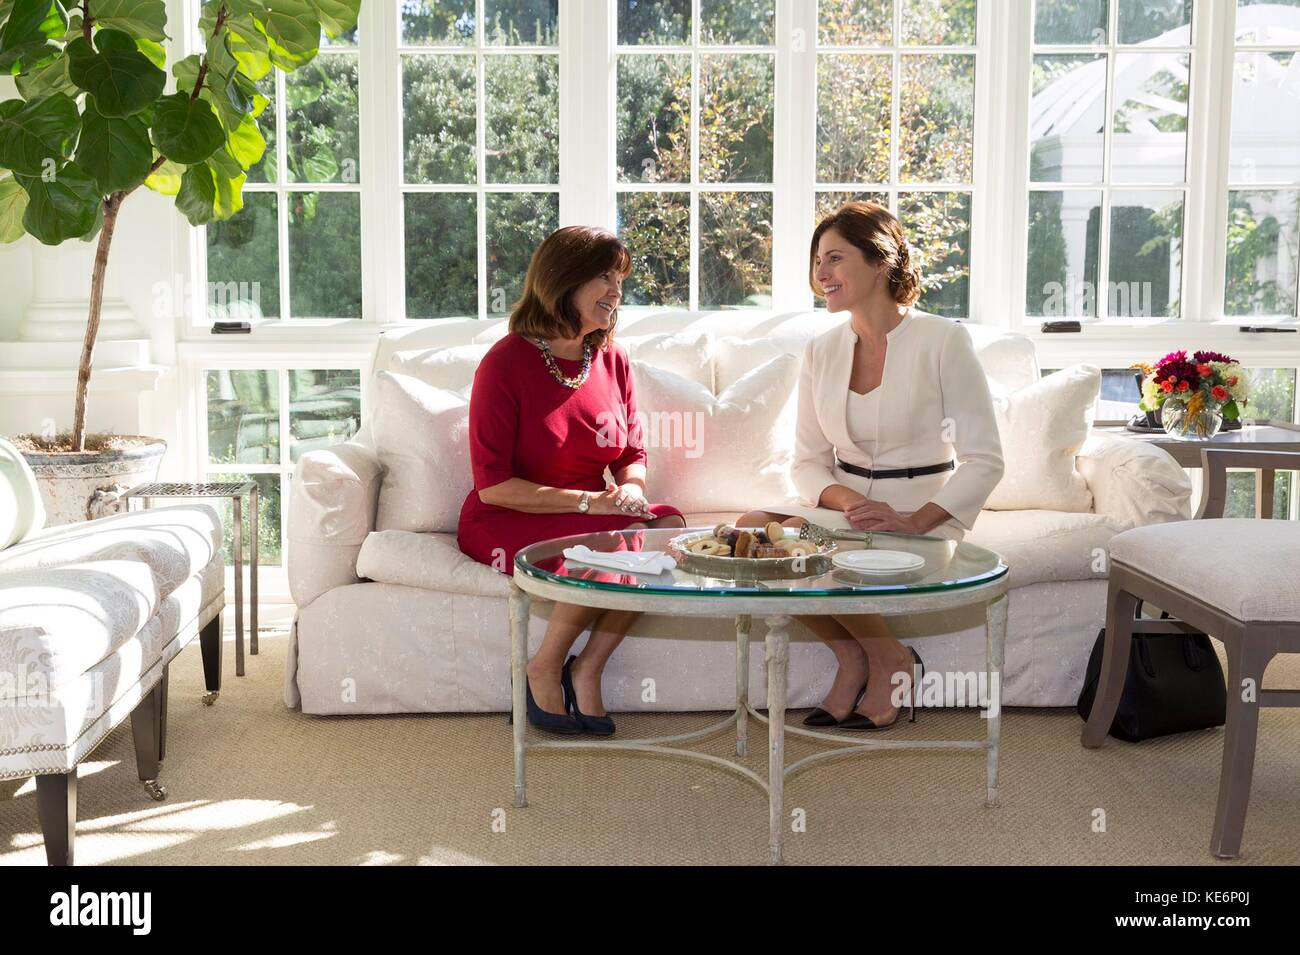 Karen Pence, left, wife of U.S. Vice President Mike Pence, has tea with Dr. Betty Baizana, wife of Greek Prime Minister - Stock Image